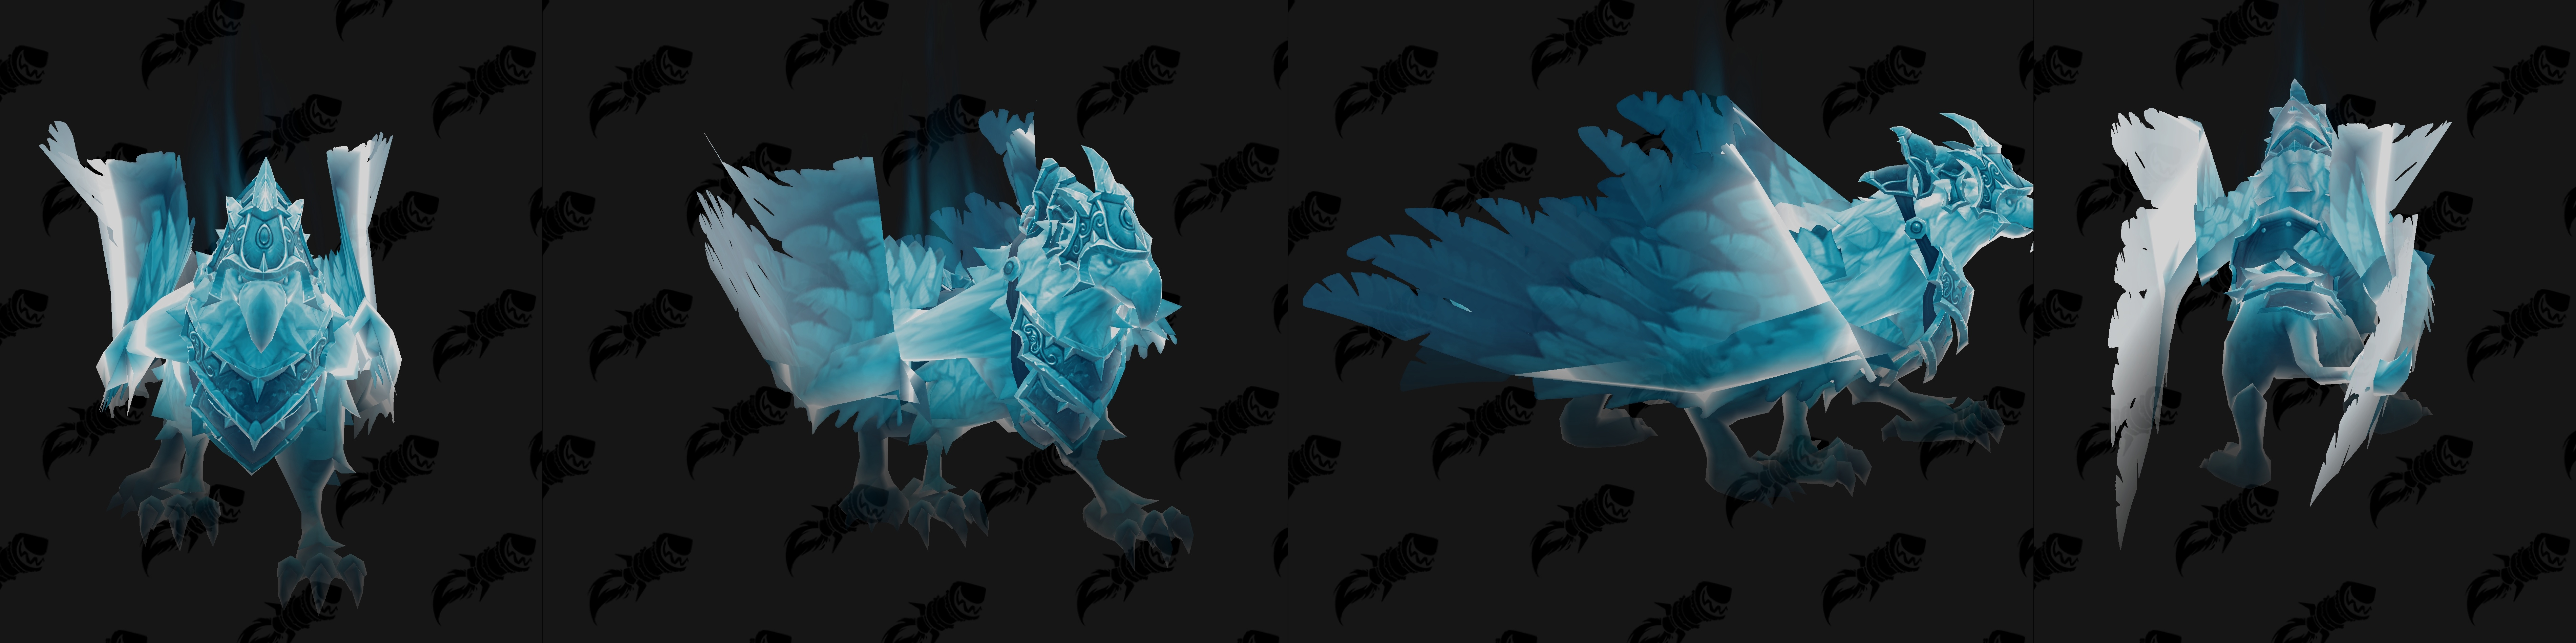 Patch 8 2 PTR Build New Spectral Mounts and Spraybot